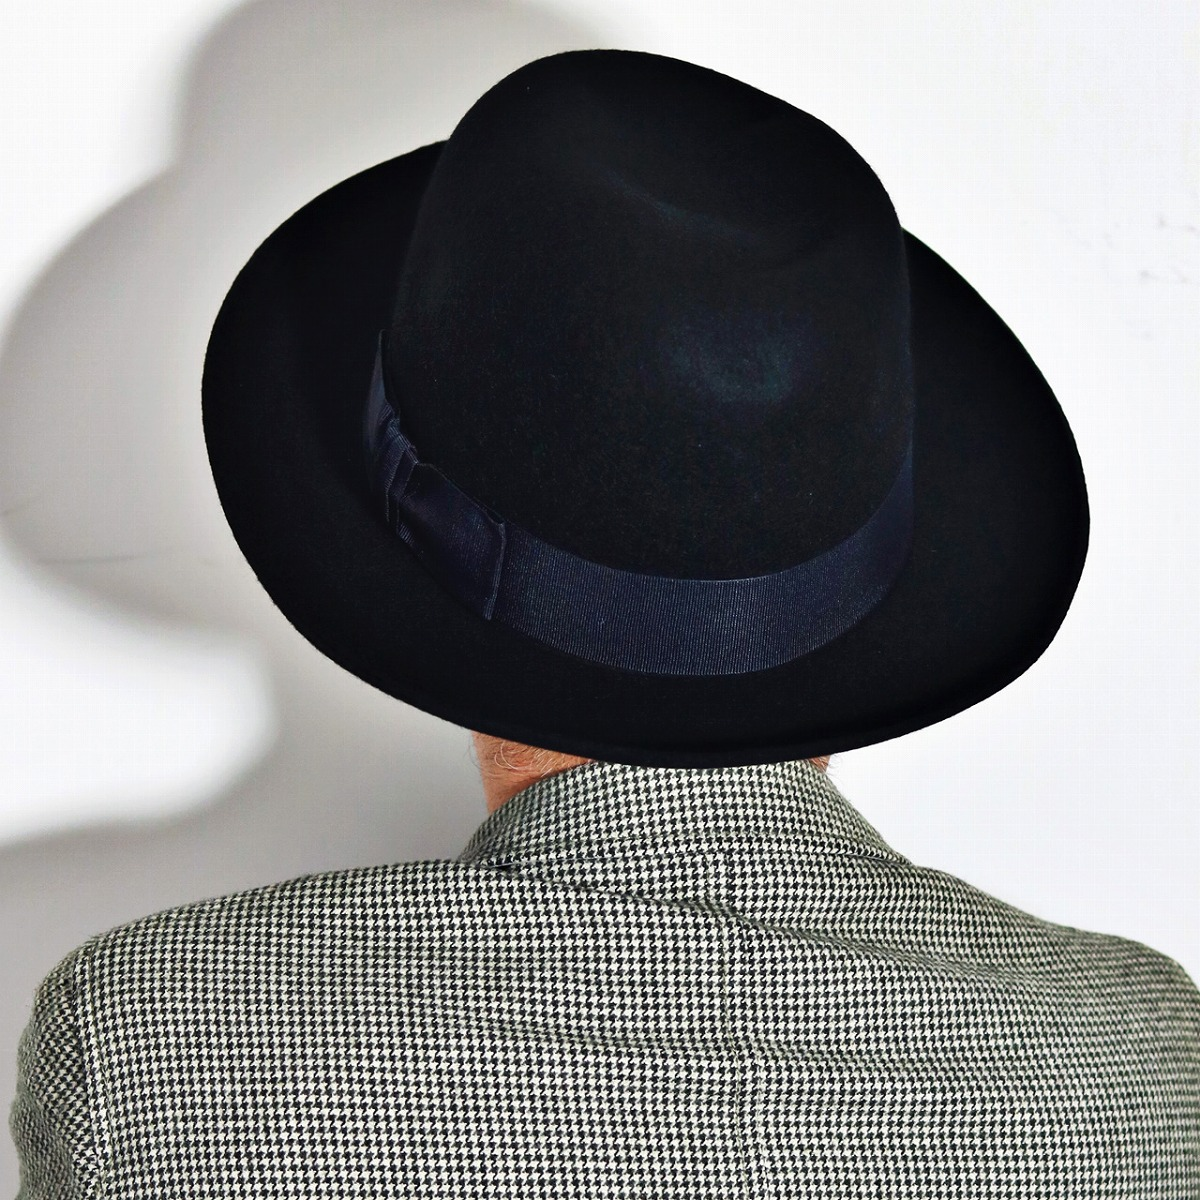 Shaped hats like Christie can freely open Crown Hat Hat mens Womens  CHRISTYS ' LONDON Ealing Poet fall/winter class black [boater hat] (40s 50s  60s